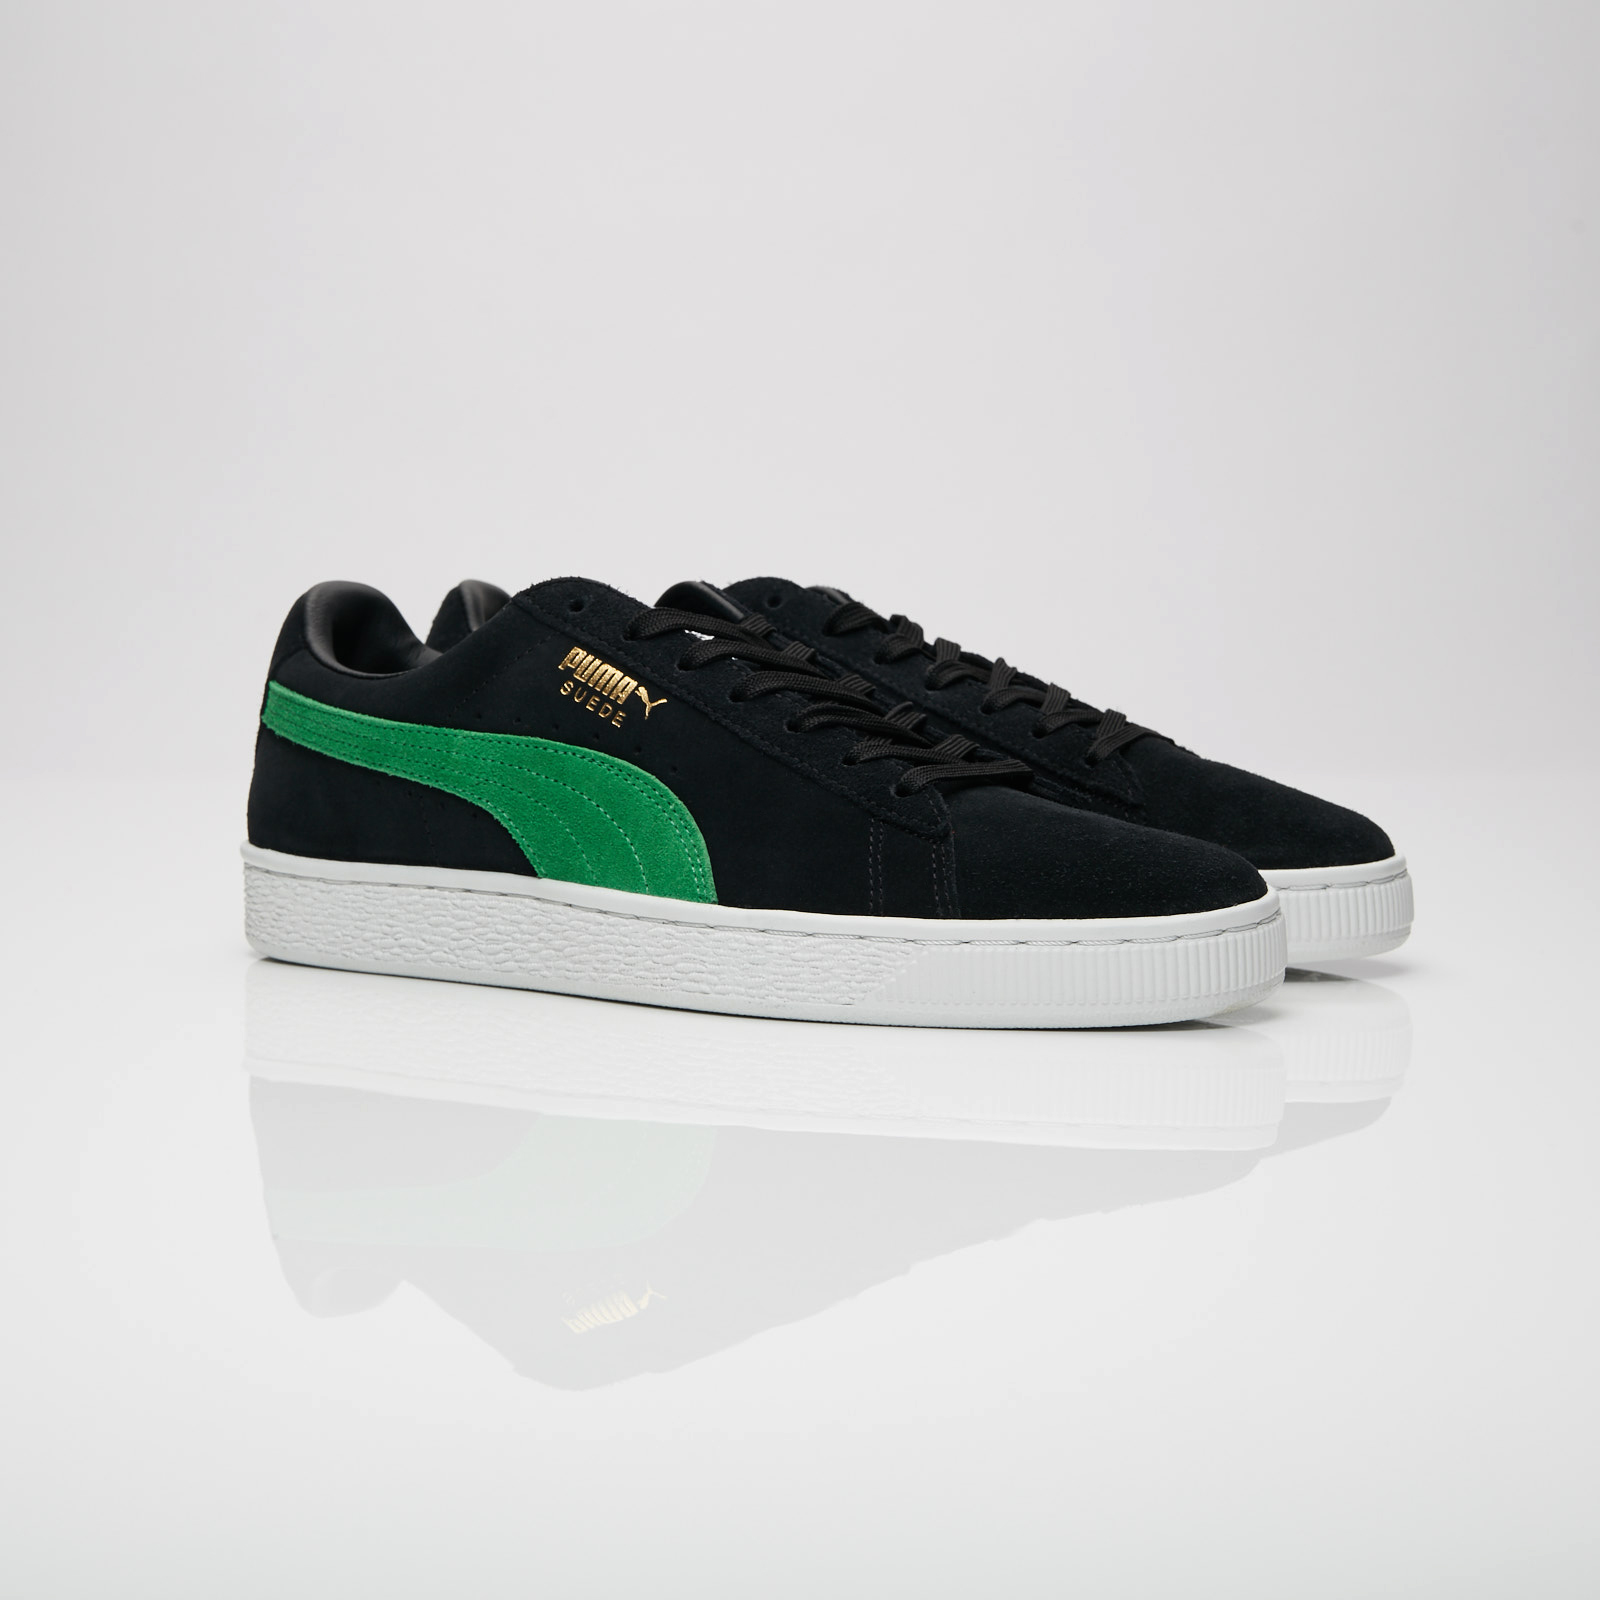 various colors 61a50 6ce4a Puma Suede Classic x Xlarge - 366307-01 - Sneakersnstuff ...